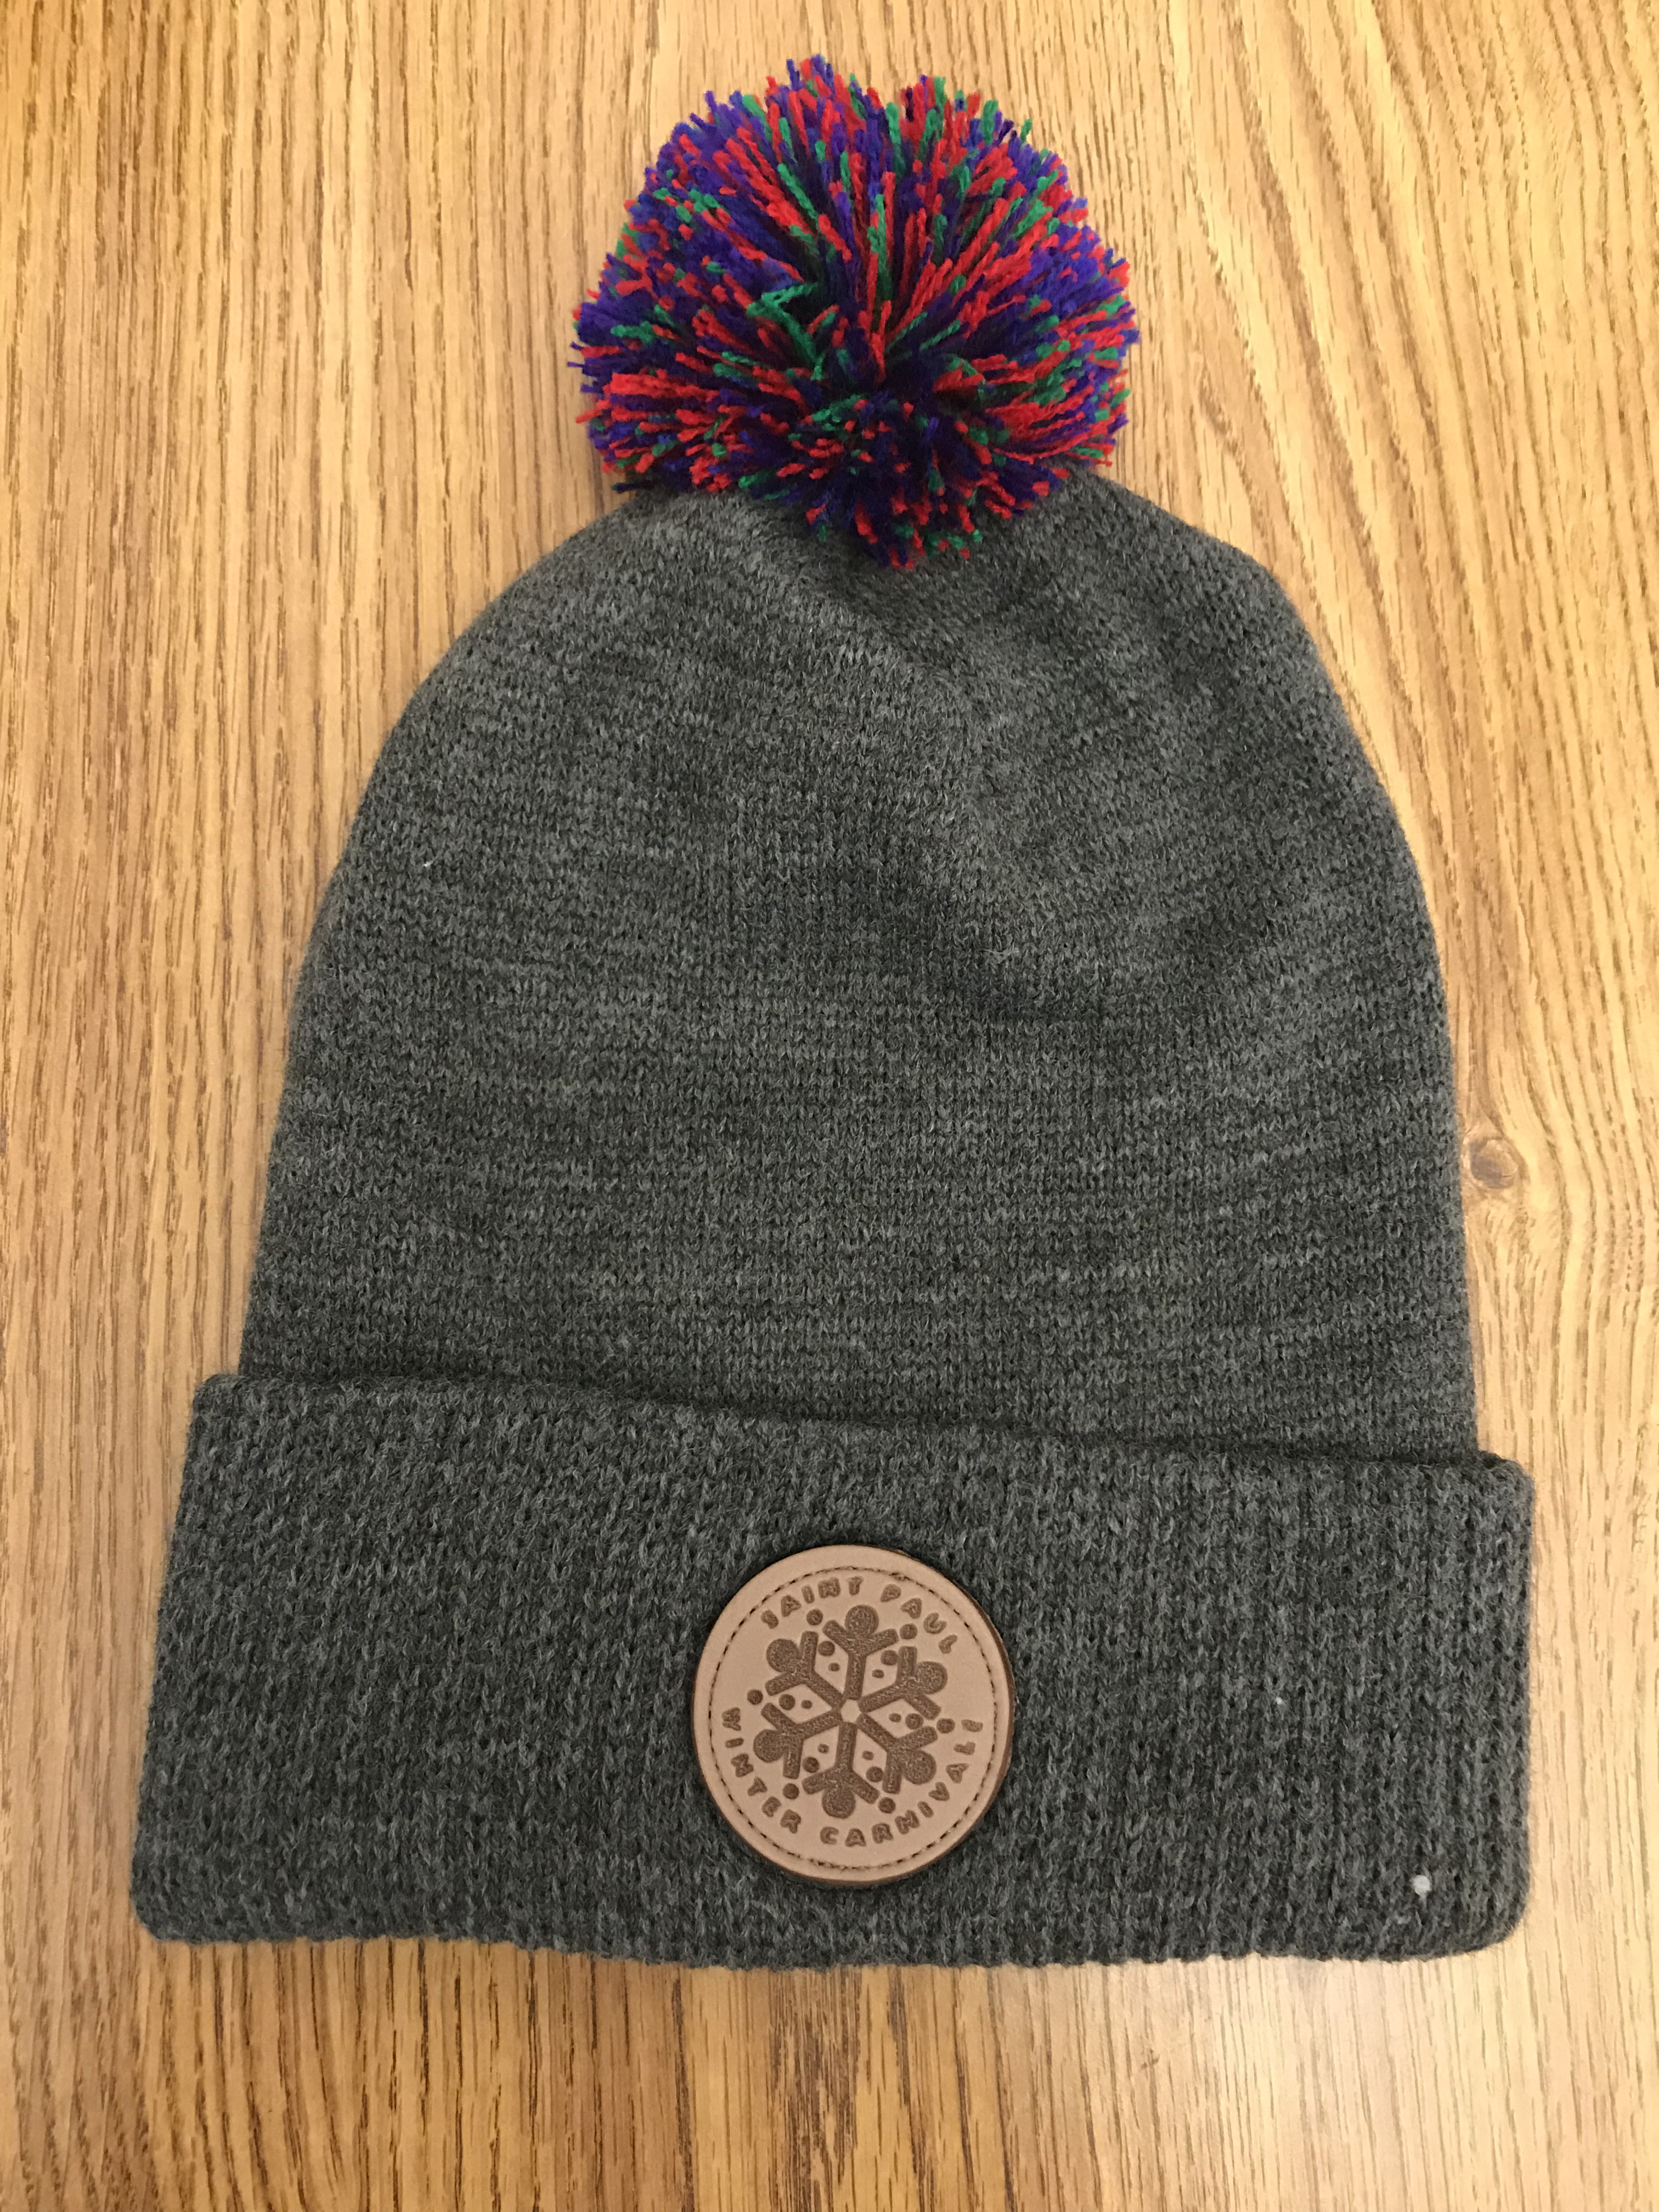 Gray Pom Pom Hat - Saint Paul Winter Carnival a81e6cb58db